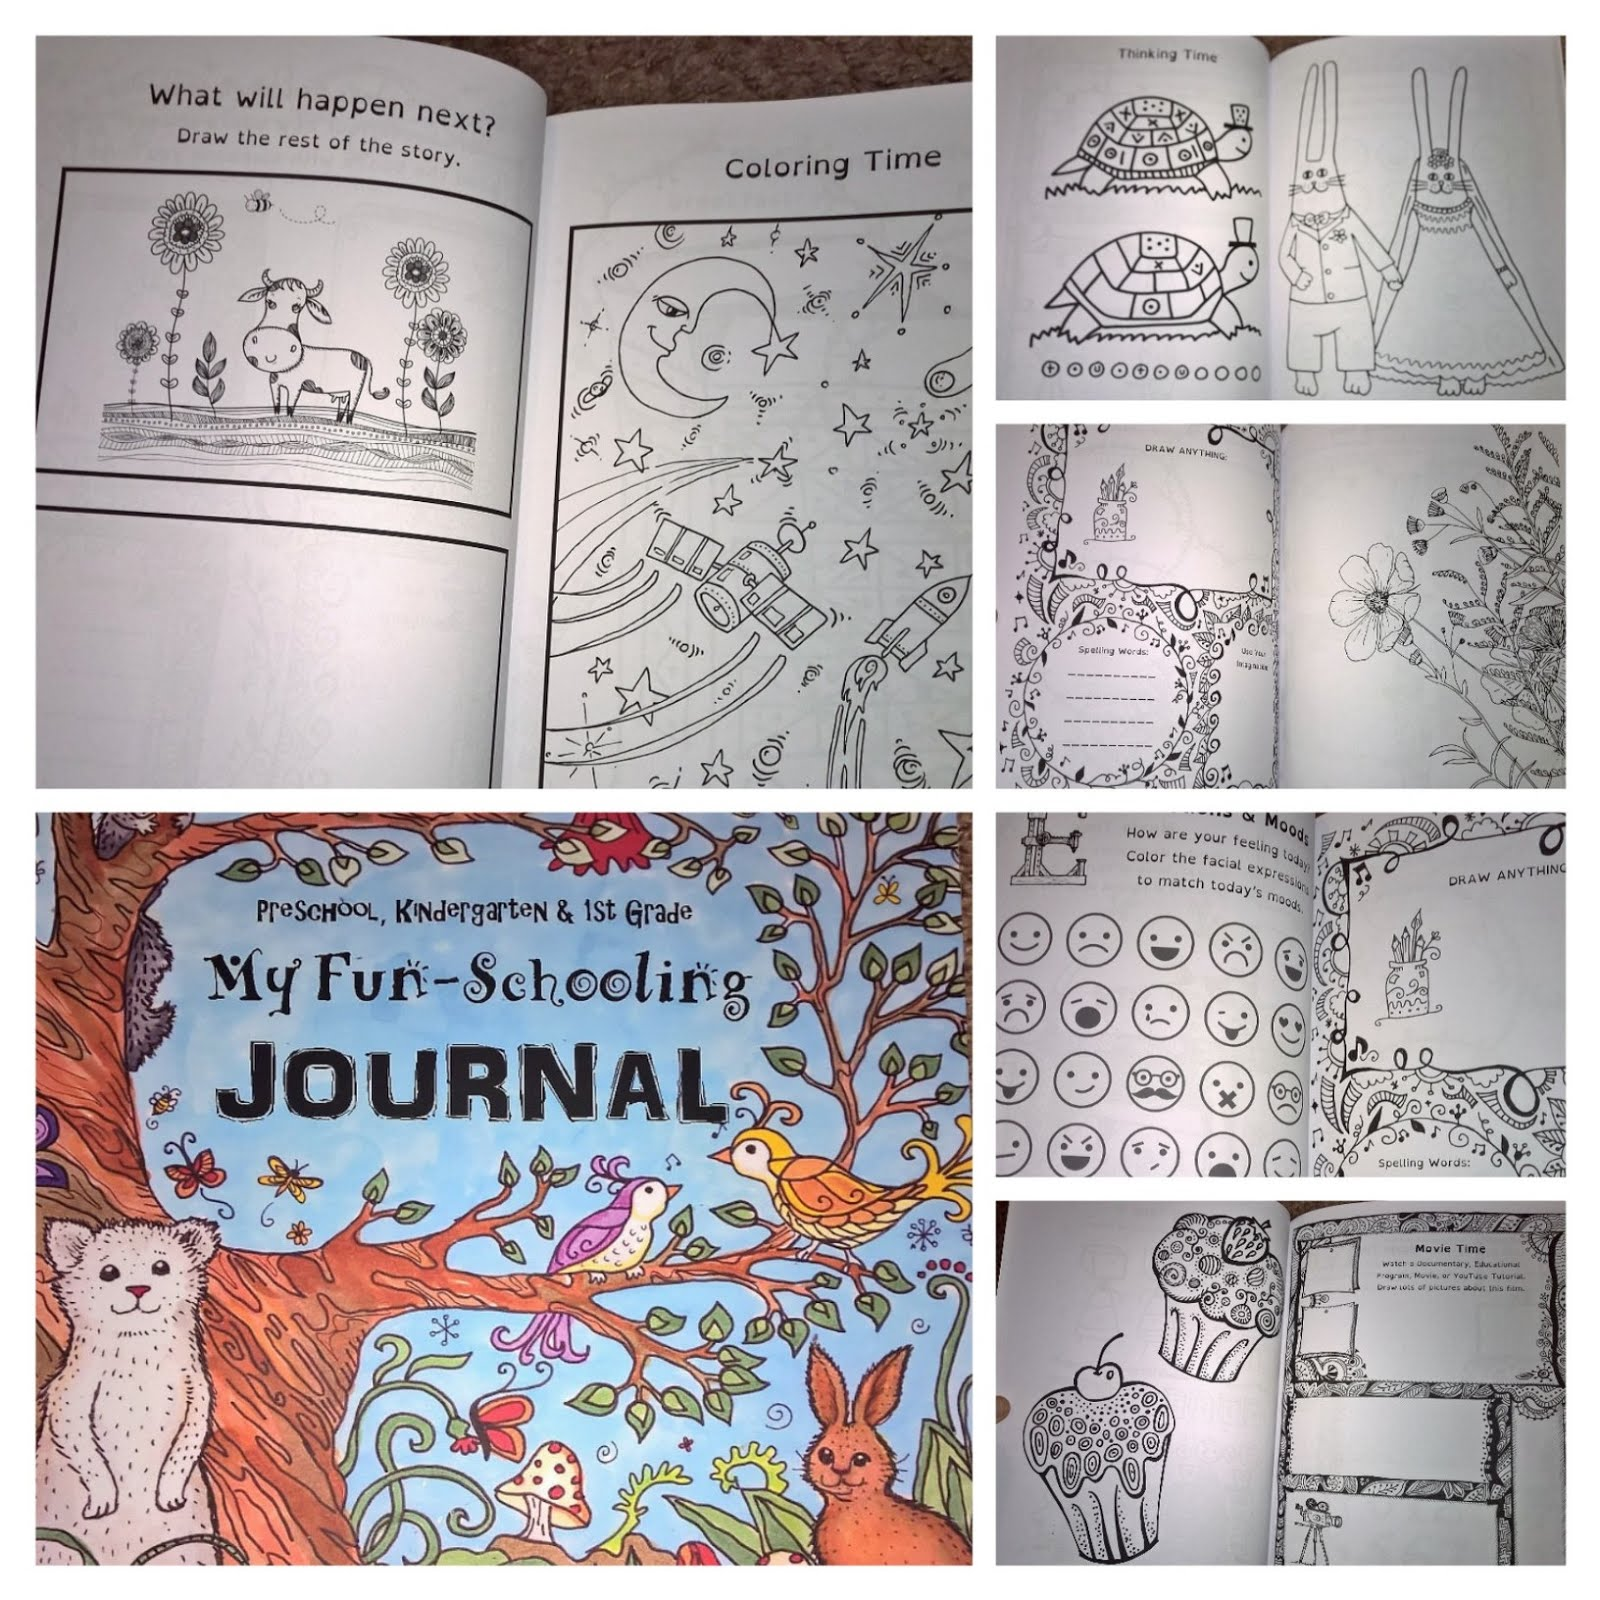 Its a good full journals and books from the thinking tree sample preschool kindergarten 1st grade my fun schooling journal a delight directed learning guide for young students 8 fun subjects solutioingenieria Gallery